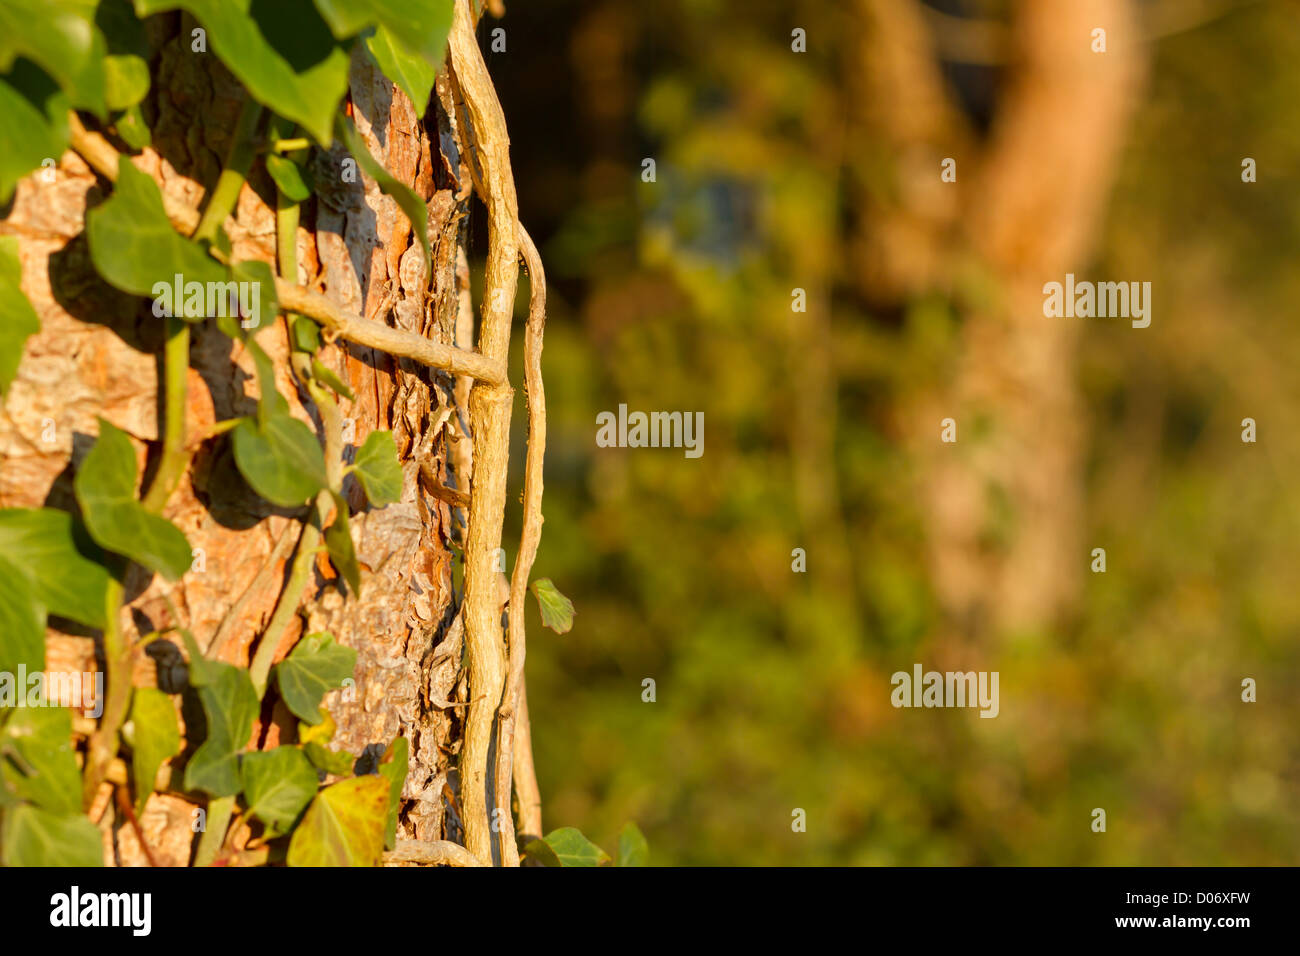 Close up of ivy roots on tree trunk. - Stock Image